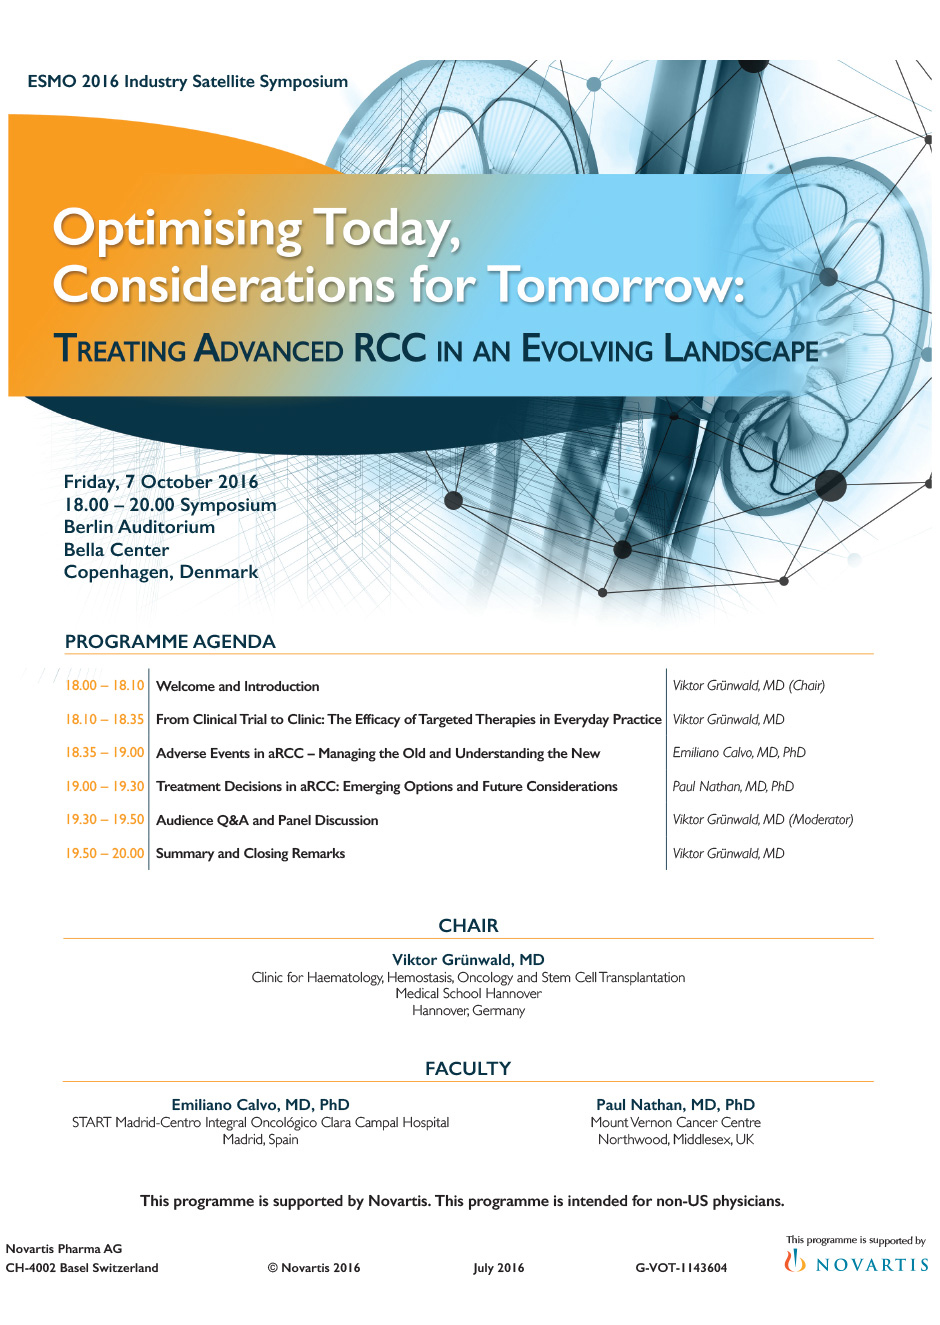 Optimising Today, Considerations for Tomorrow: Treating Advanced RCC in an Evolving Landscape